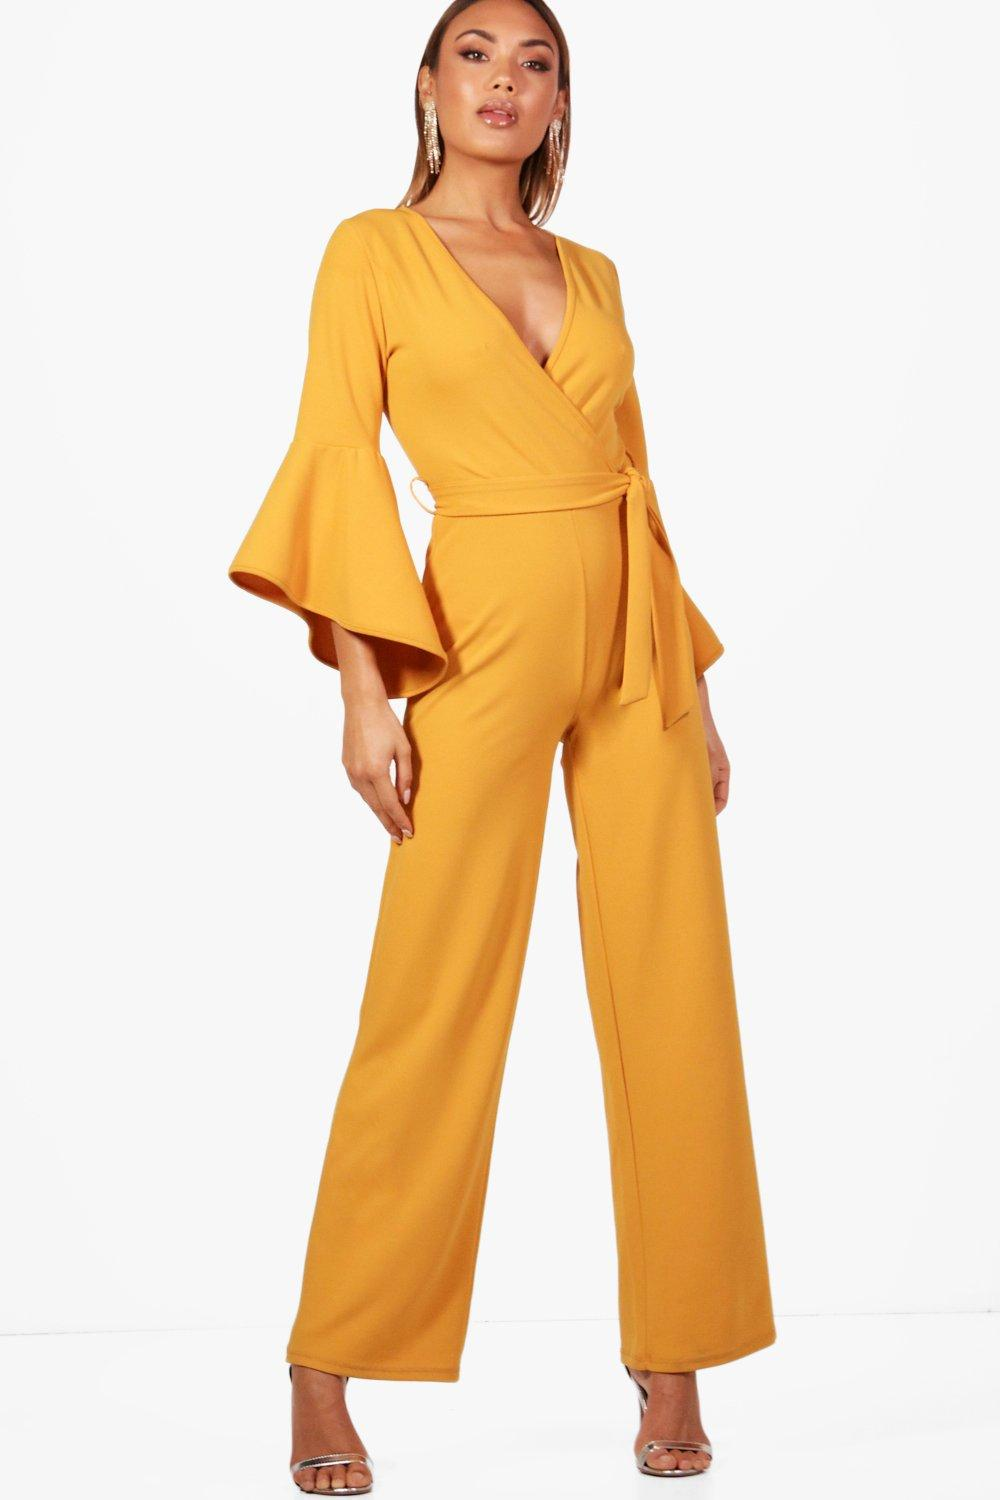 8dd71754f258 15 chic wedding jumpsuits to wear instead of a white gown - HelloGiggles